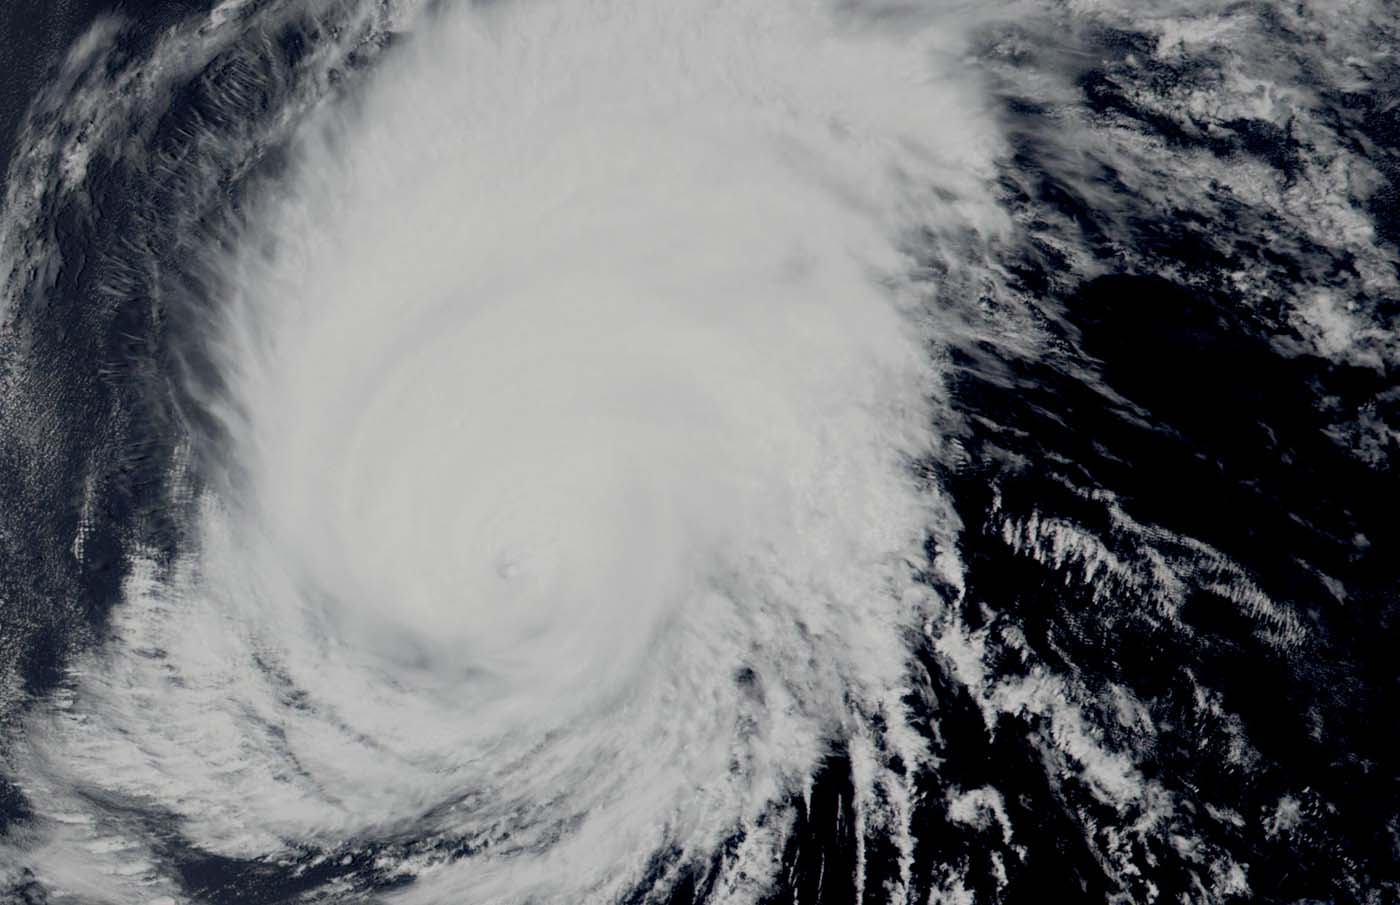 hight resolution of hurricane barbara continued to show an eye in visible imagery on july 4 2019 nasa noaa s suomi npp satellite passed over the eastern pacific ocean and the